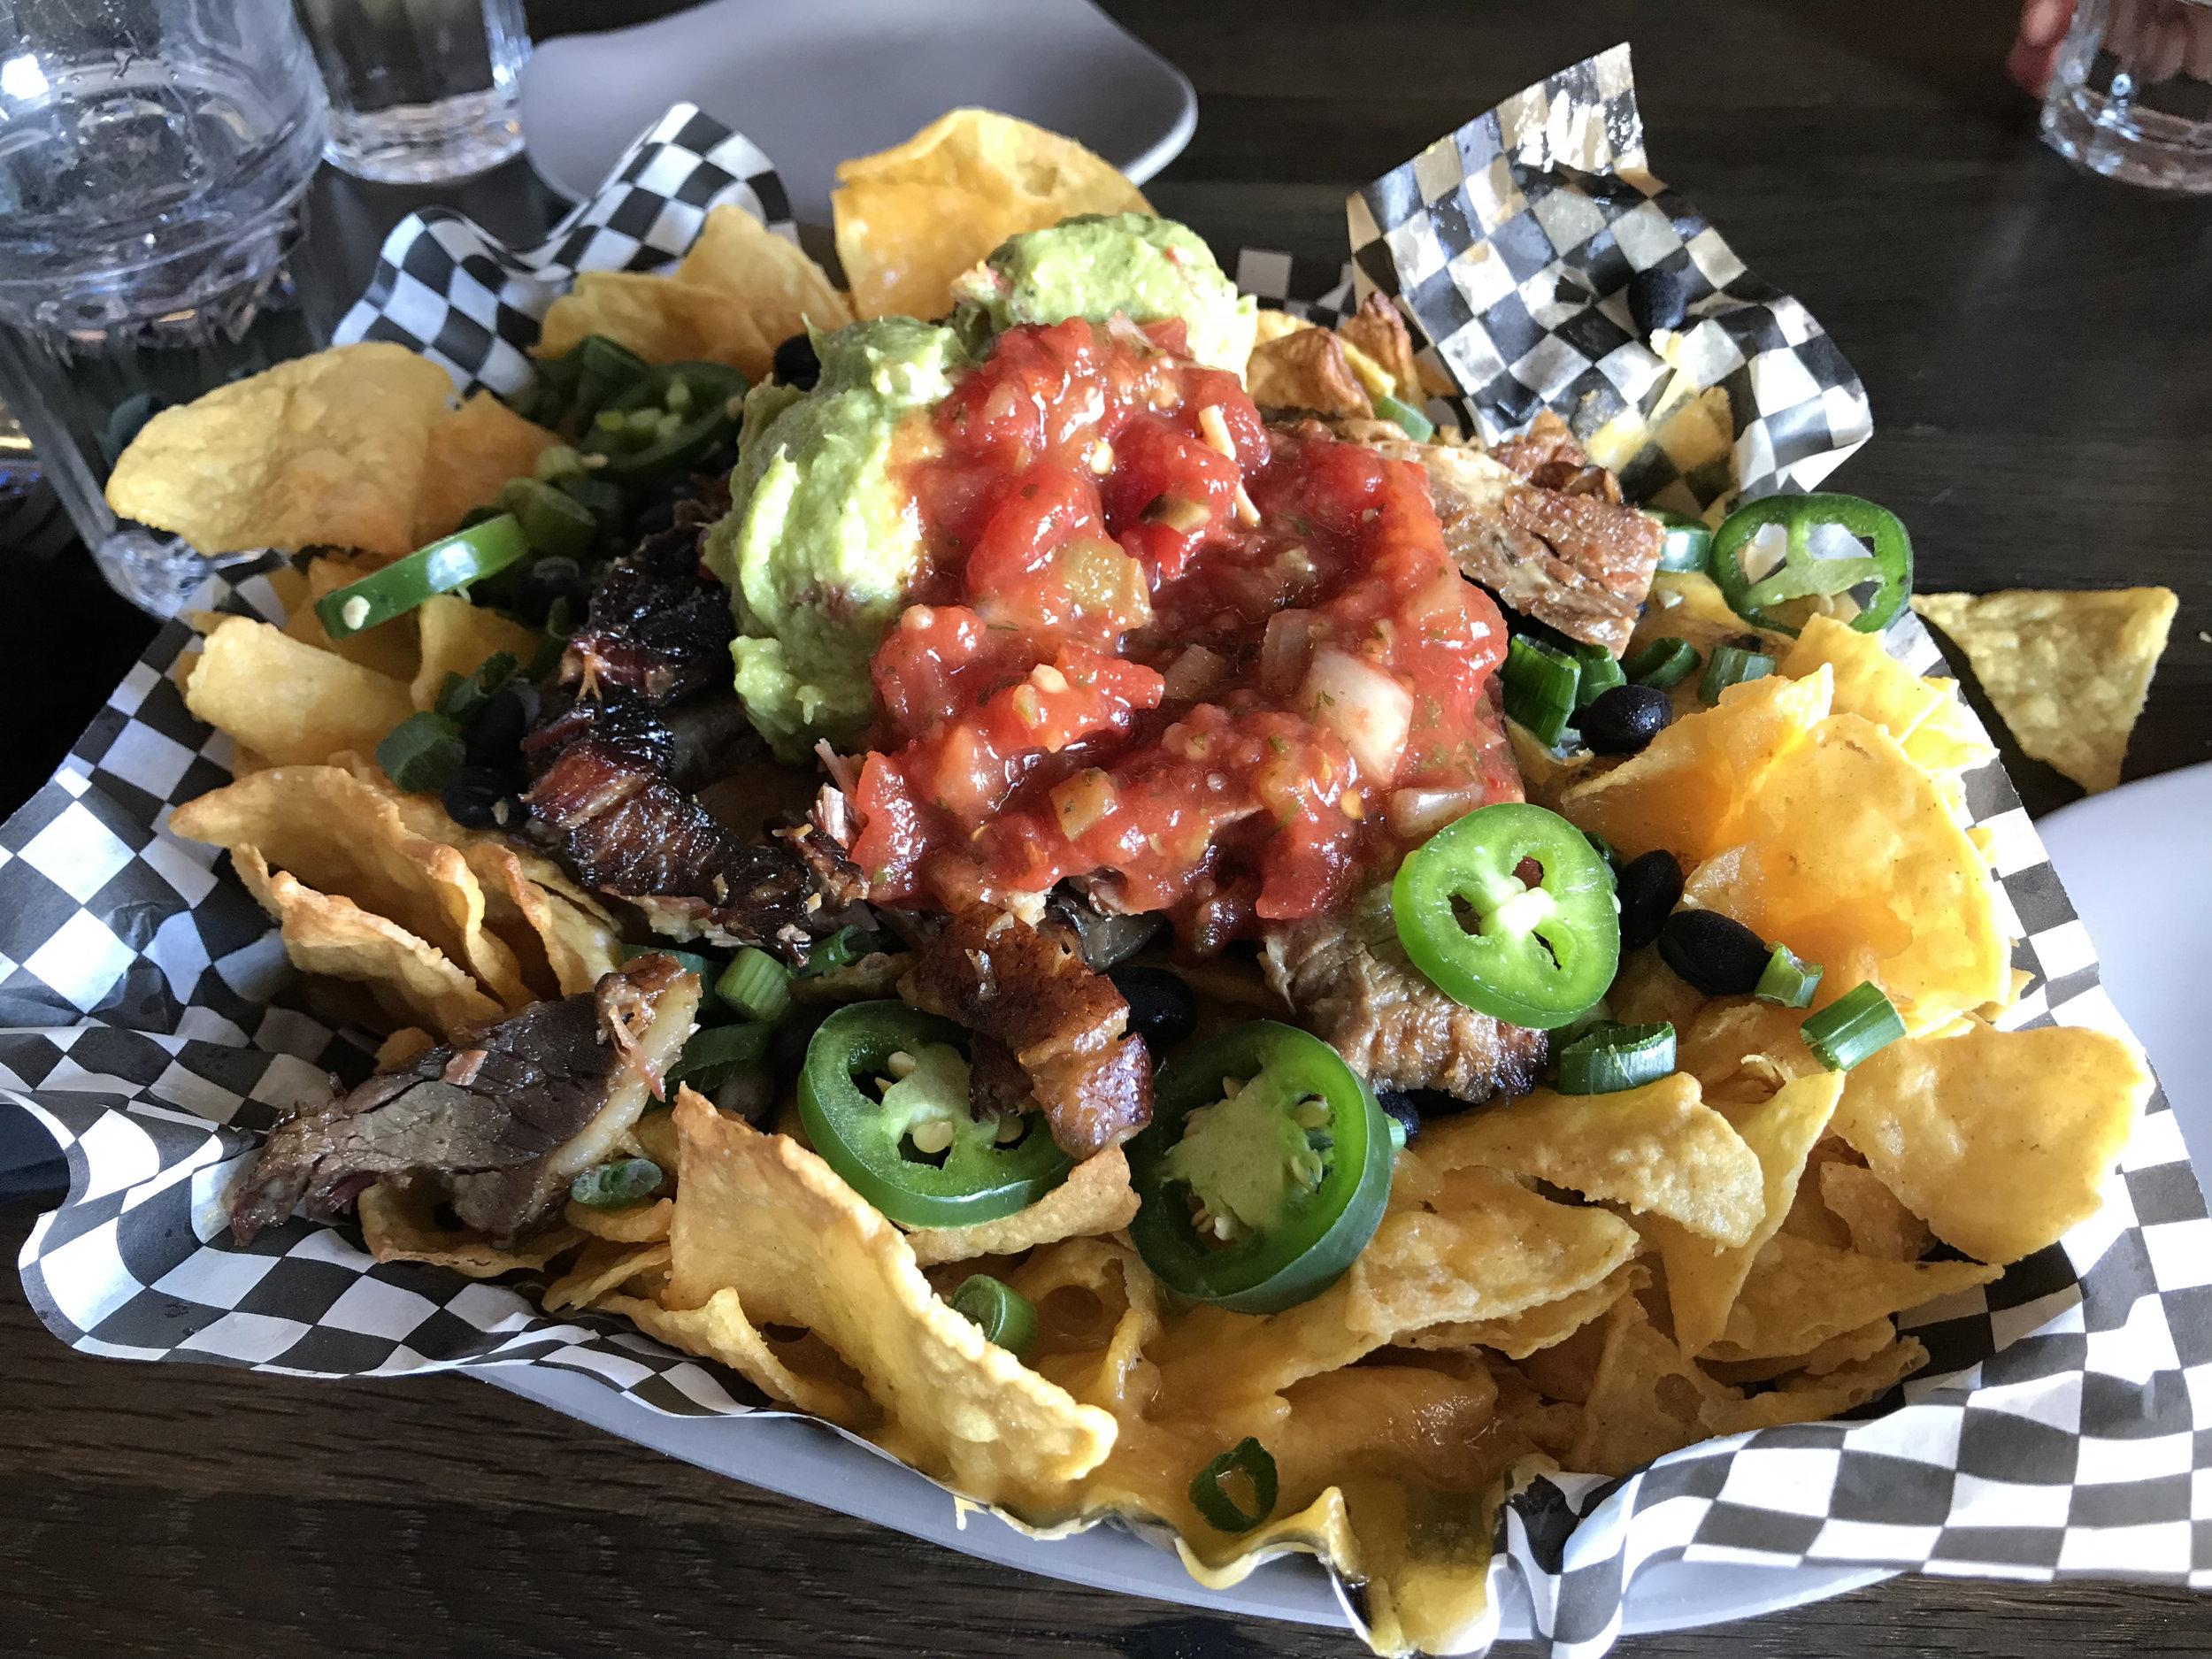 """This heaping nacho plate from the  """"Y Bar""""  (in the Day Lodge at Timberline)was just the thing to recharge three of us for the rush back out to """"find more un-tracked"""" and close out the day. Epic indeed. Image Courtesy: Dan Meyers"""